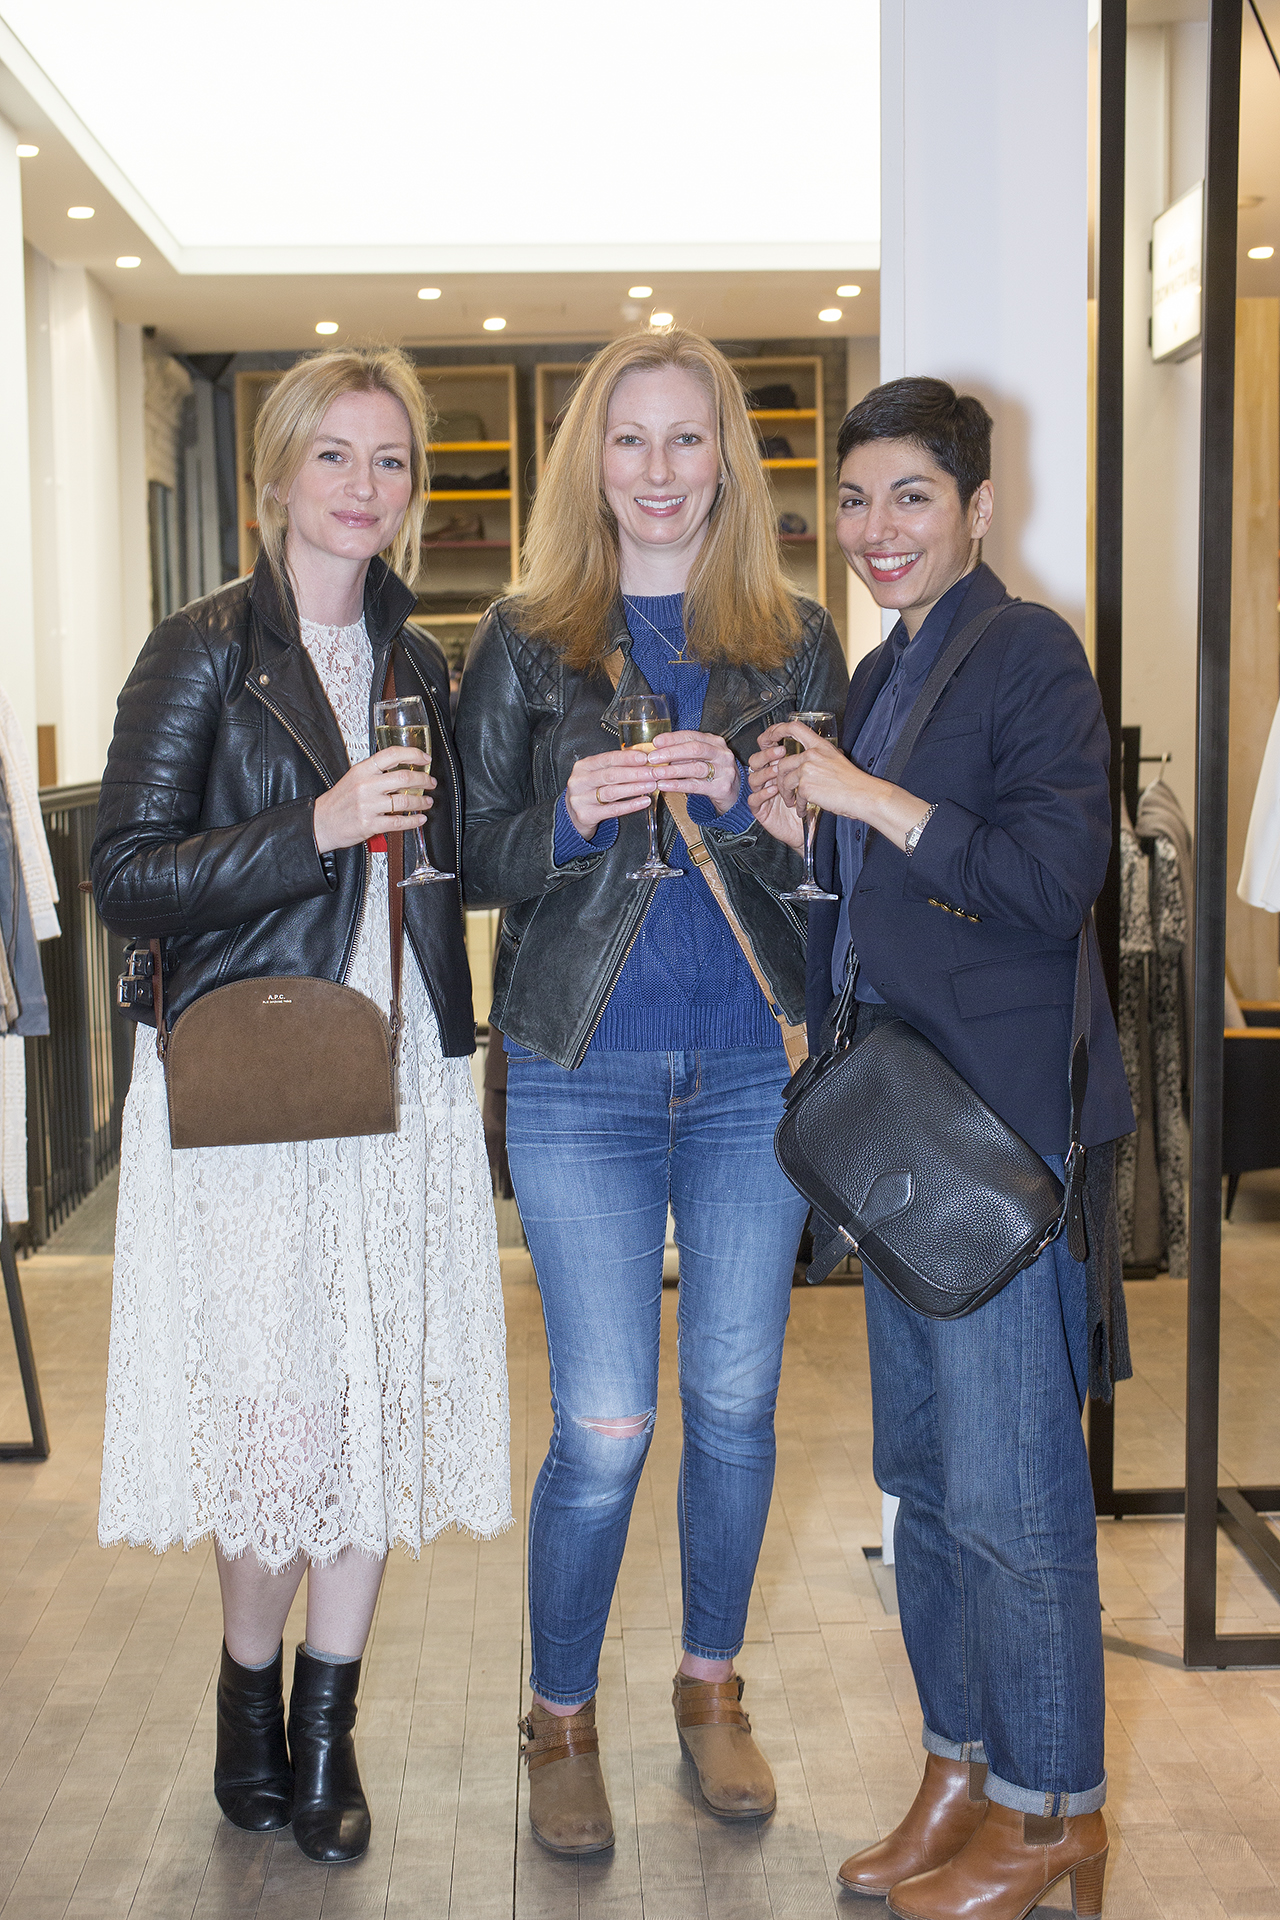 From the left: Stacey Duguid, Lucy McQuiitty and Navaz Batliwalla